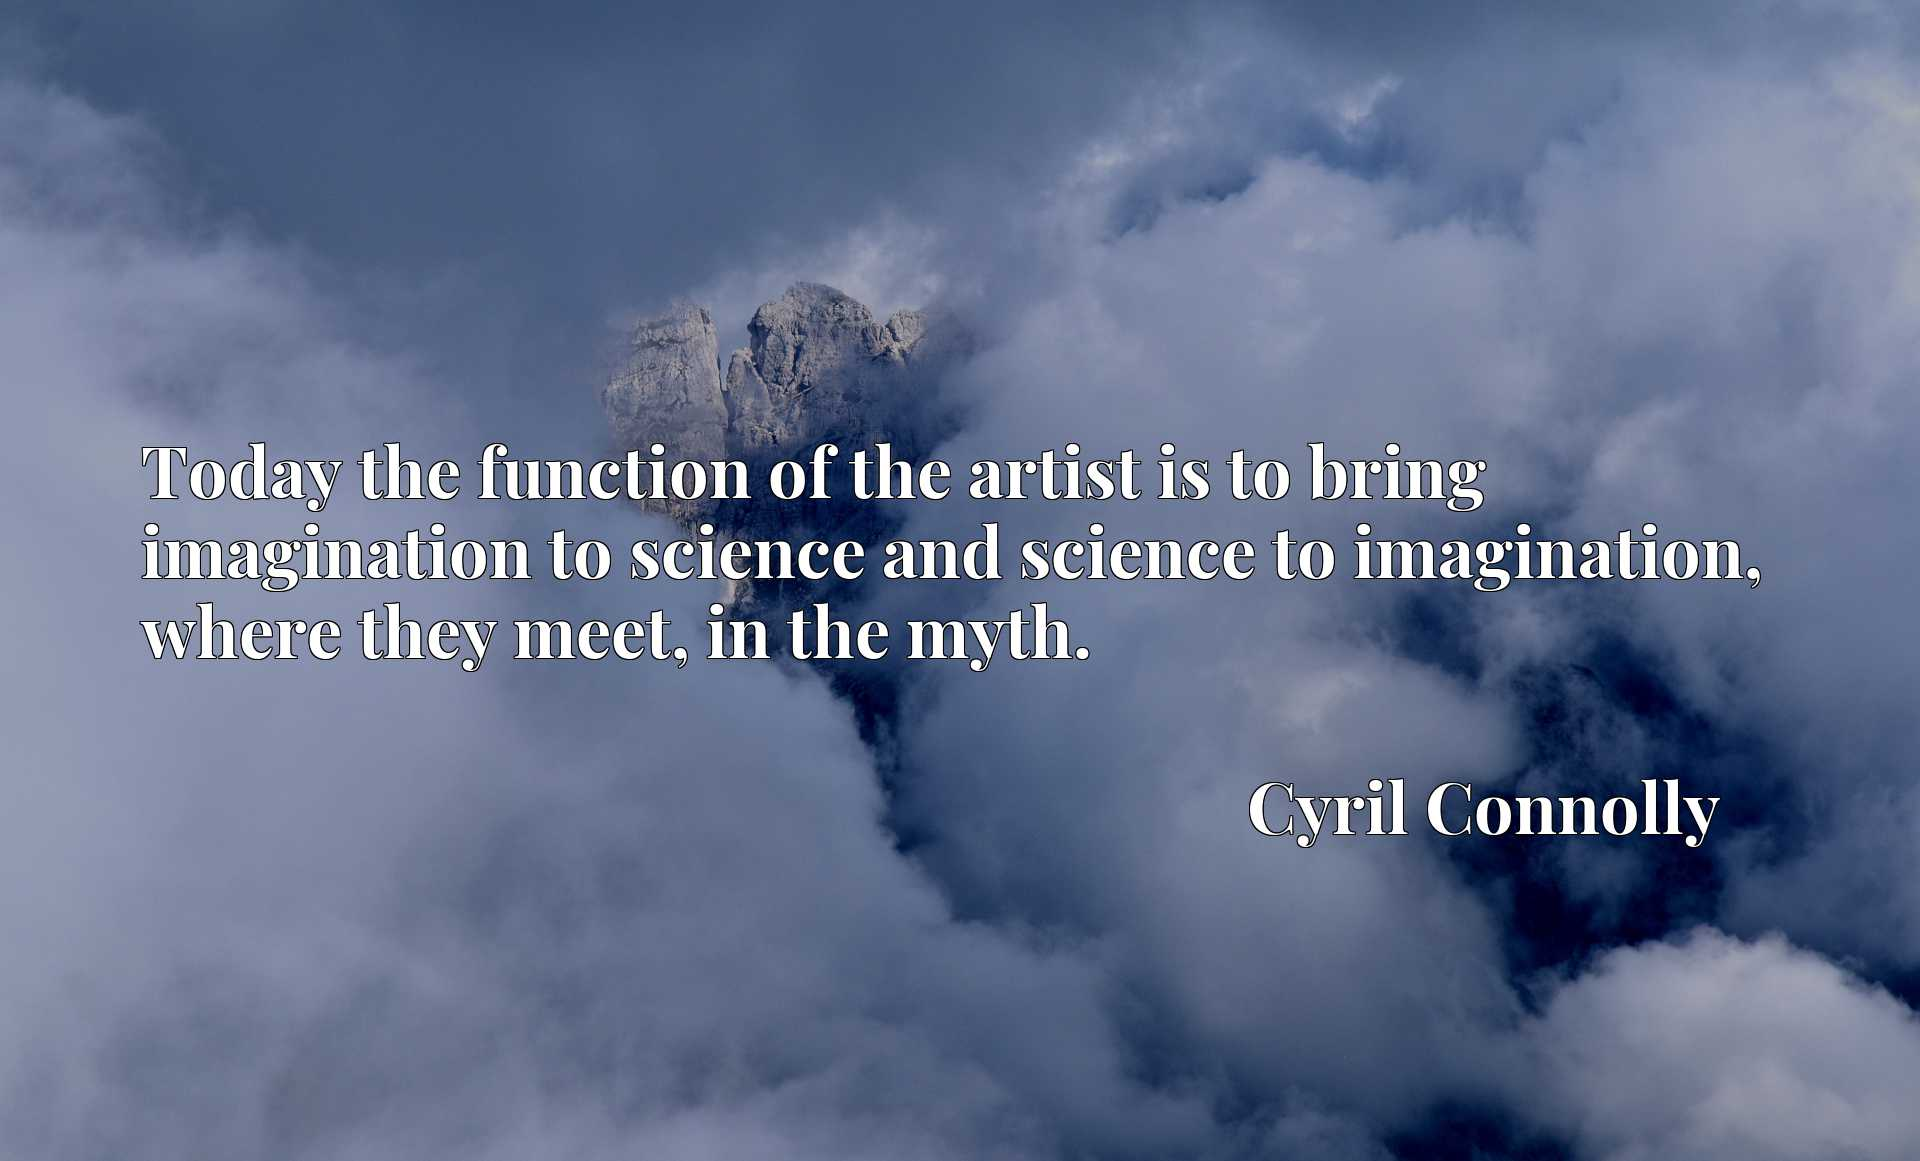 Today the function of the artist is to bring imagination to science and science to imagination, where they meet, in the myth.